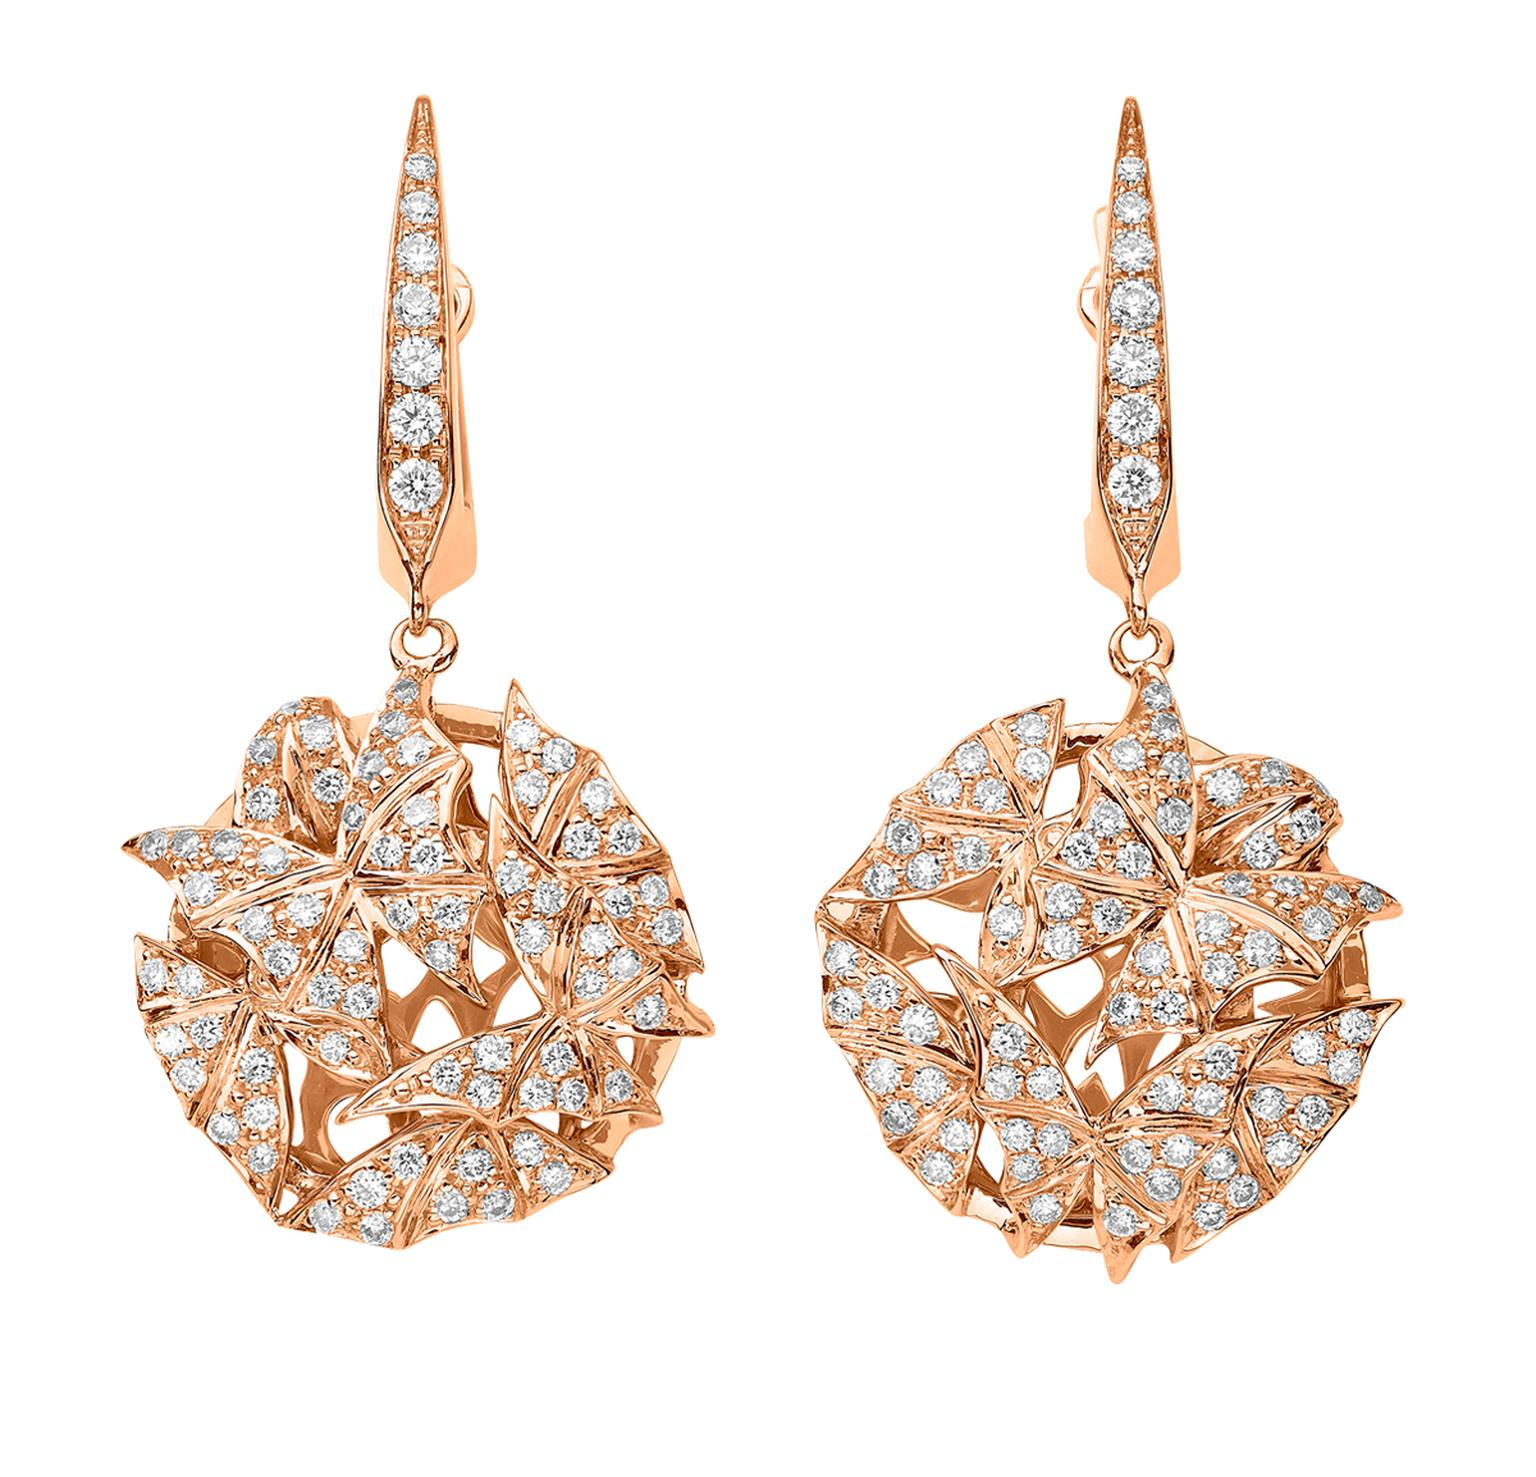 Stephen Webster Fly by Night Mothball earrings in rose gold and diamonds_20131220_Zoom